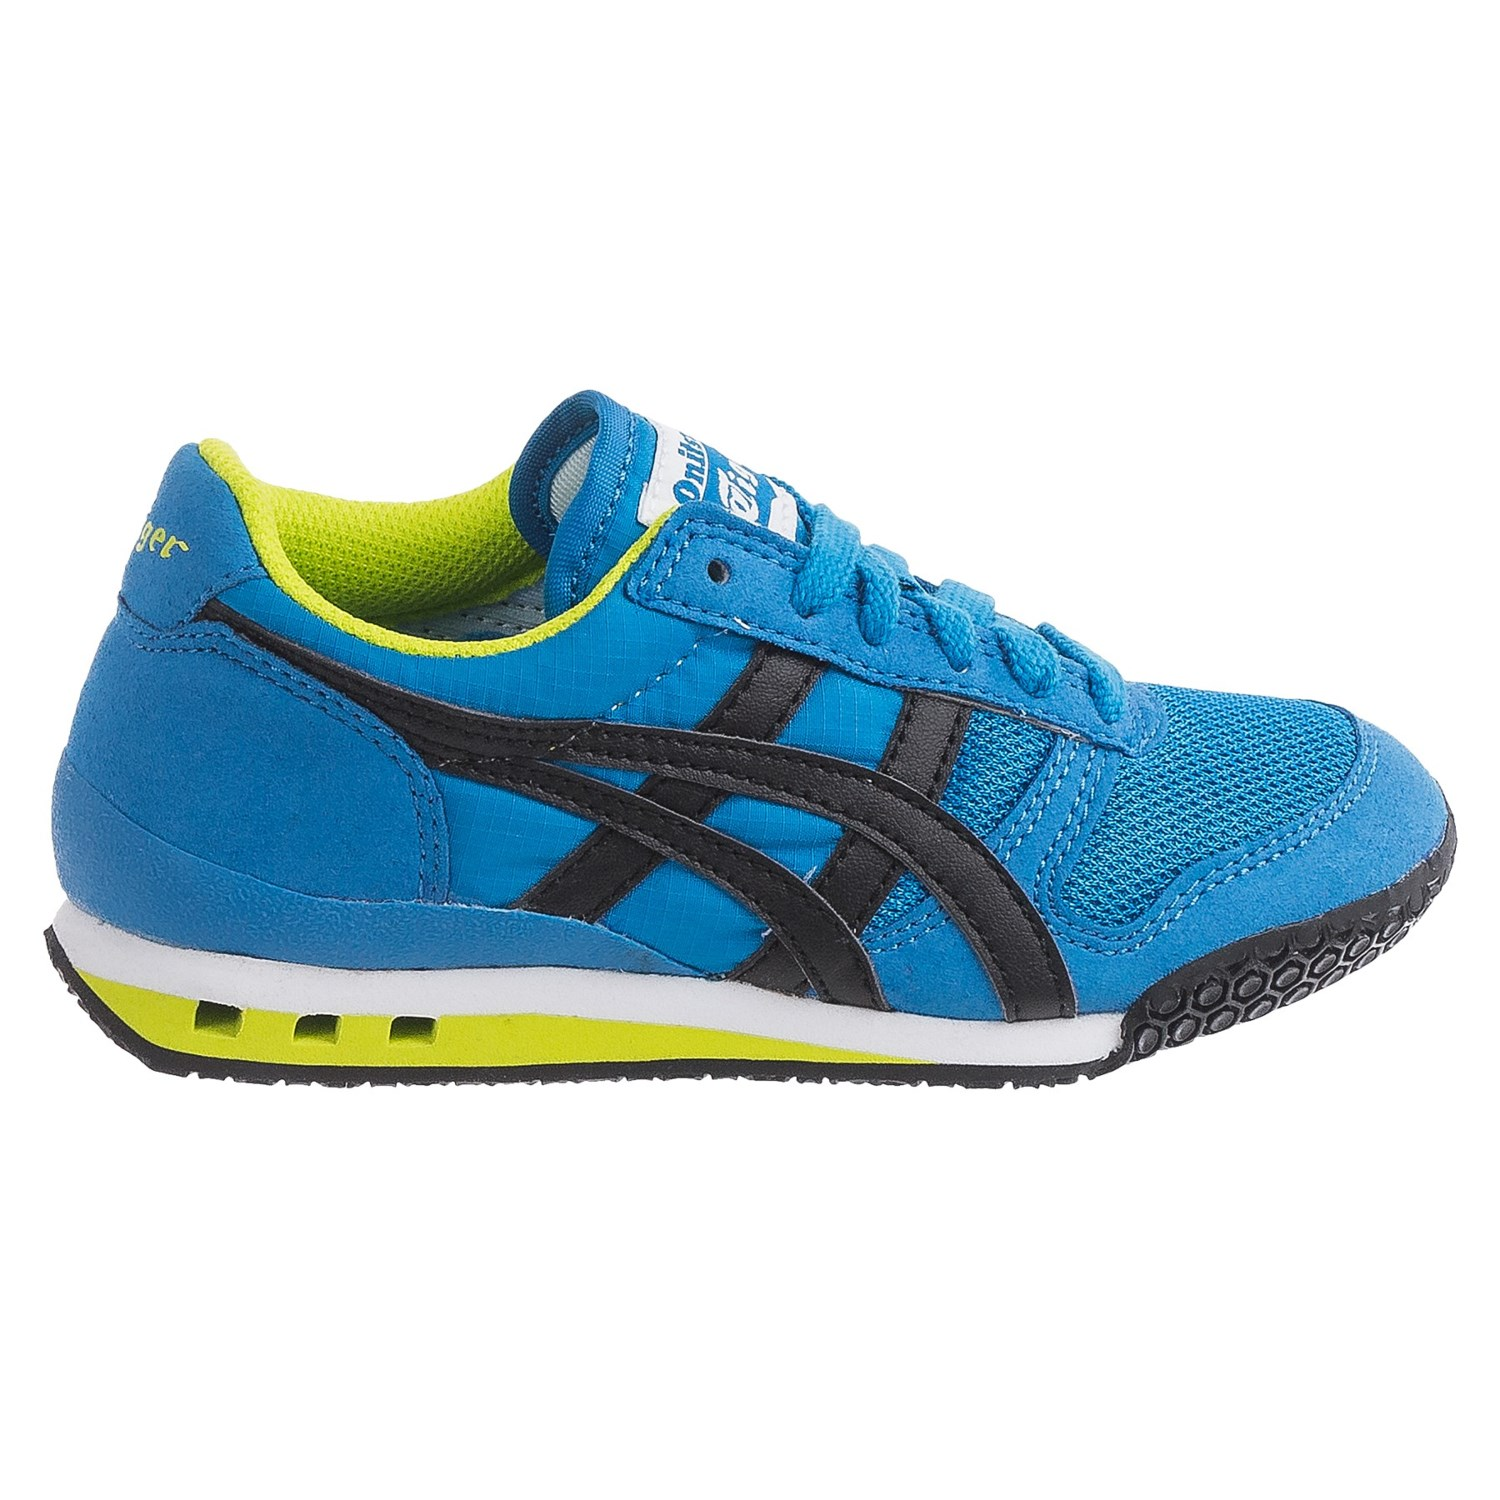 onitsuka tiger mexico 66 shoes price in india xxl gris